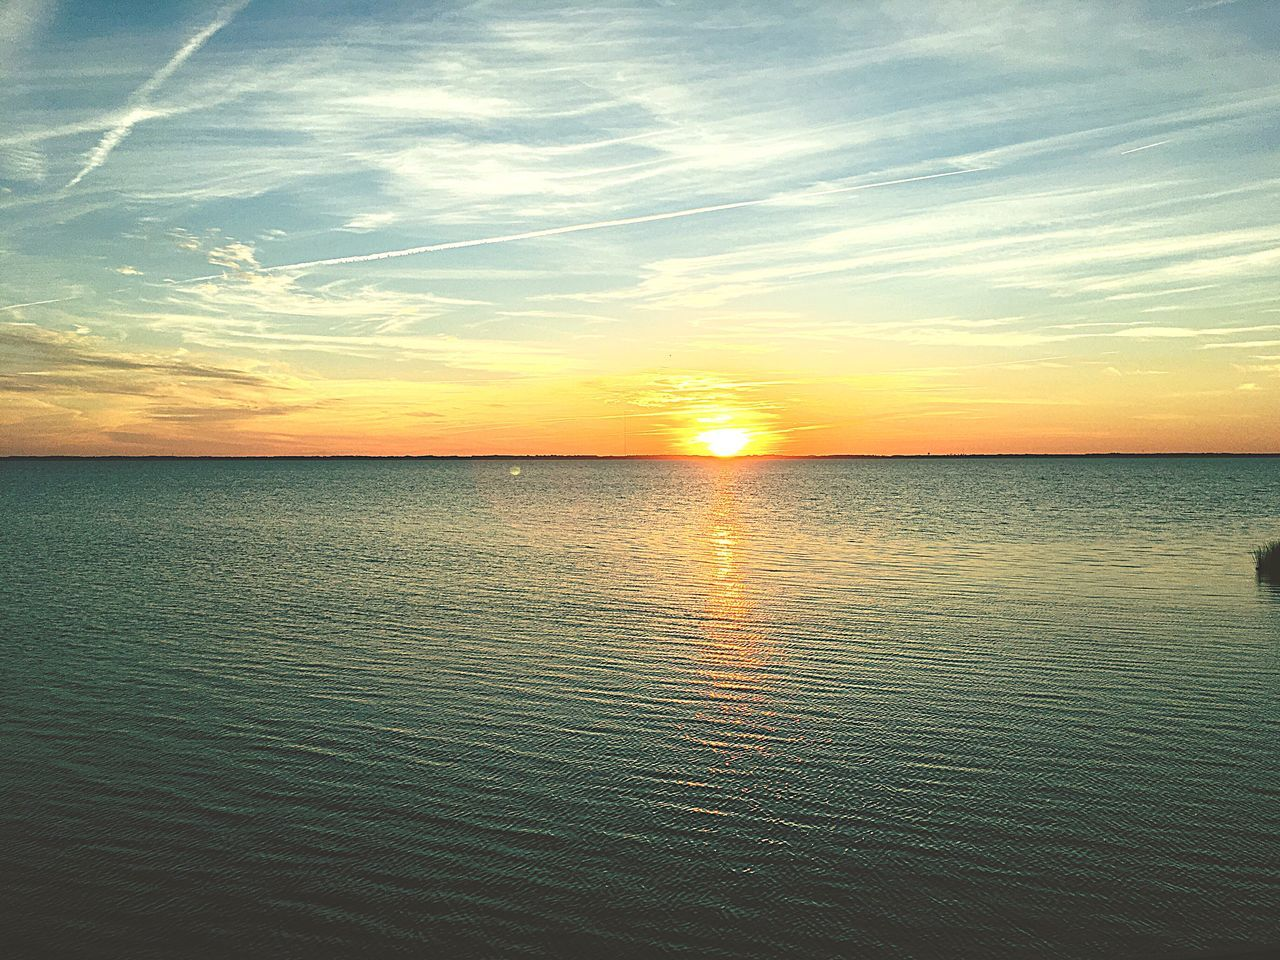 sunset, scenics, sea, tranquility, tranquil scene, beauty in nature, water, reflection, nature, idyllic, sky, sun, no people, horizon over water, outdoors, waterfront, beach, day